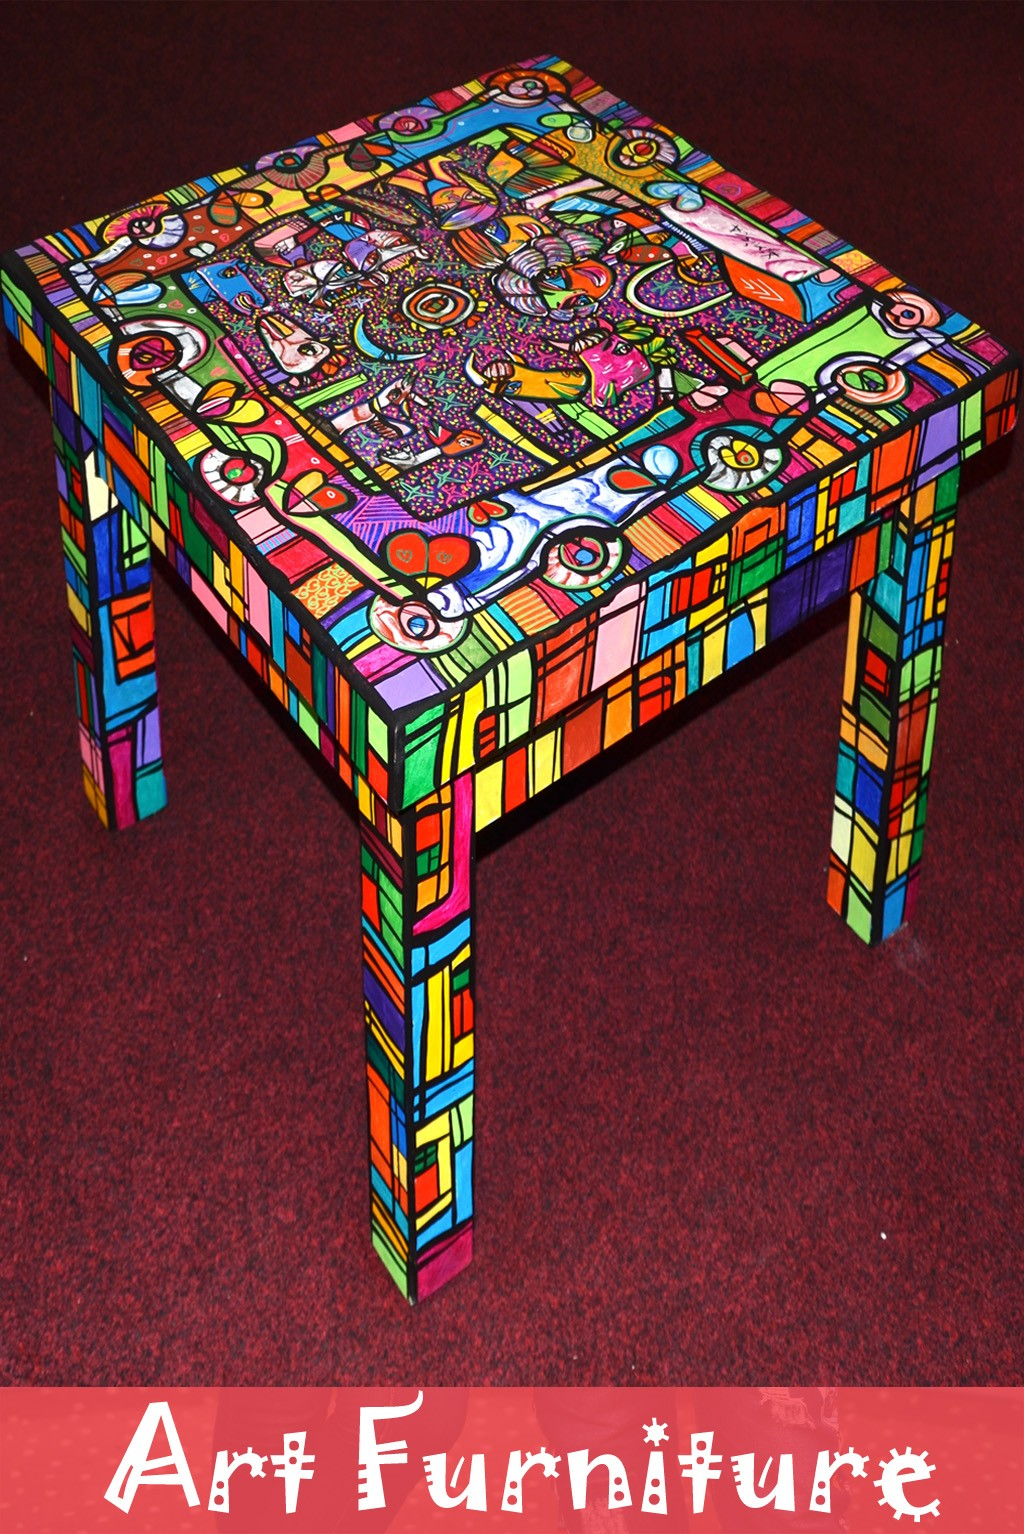 Art Furniture